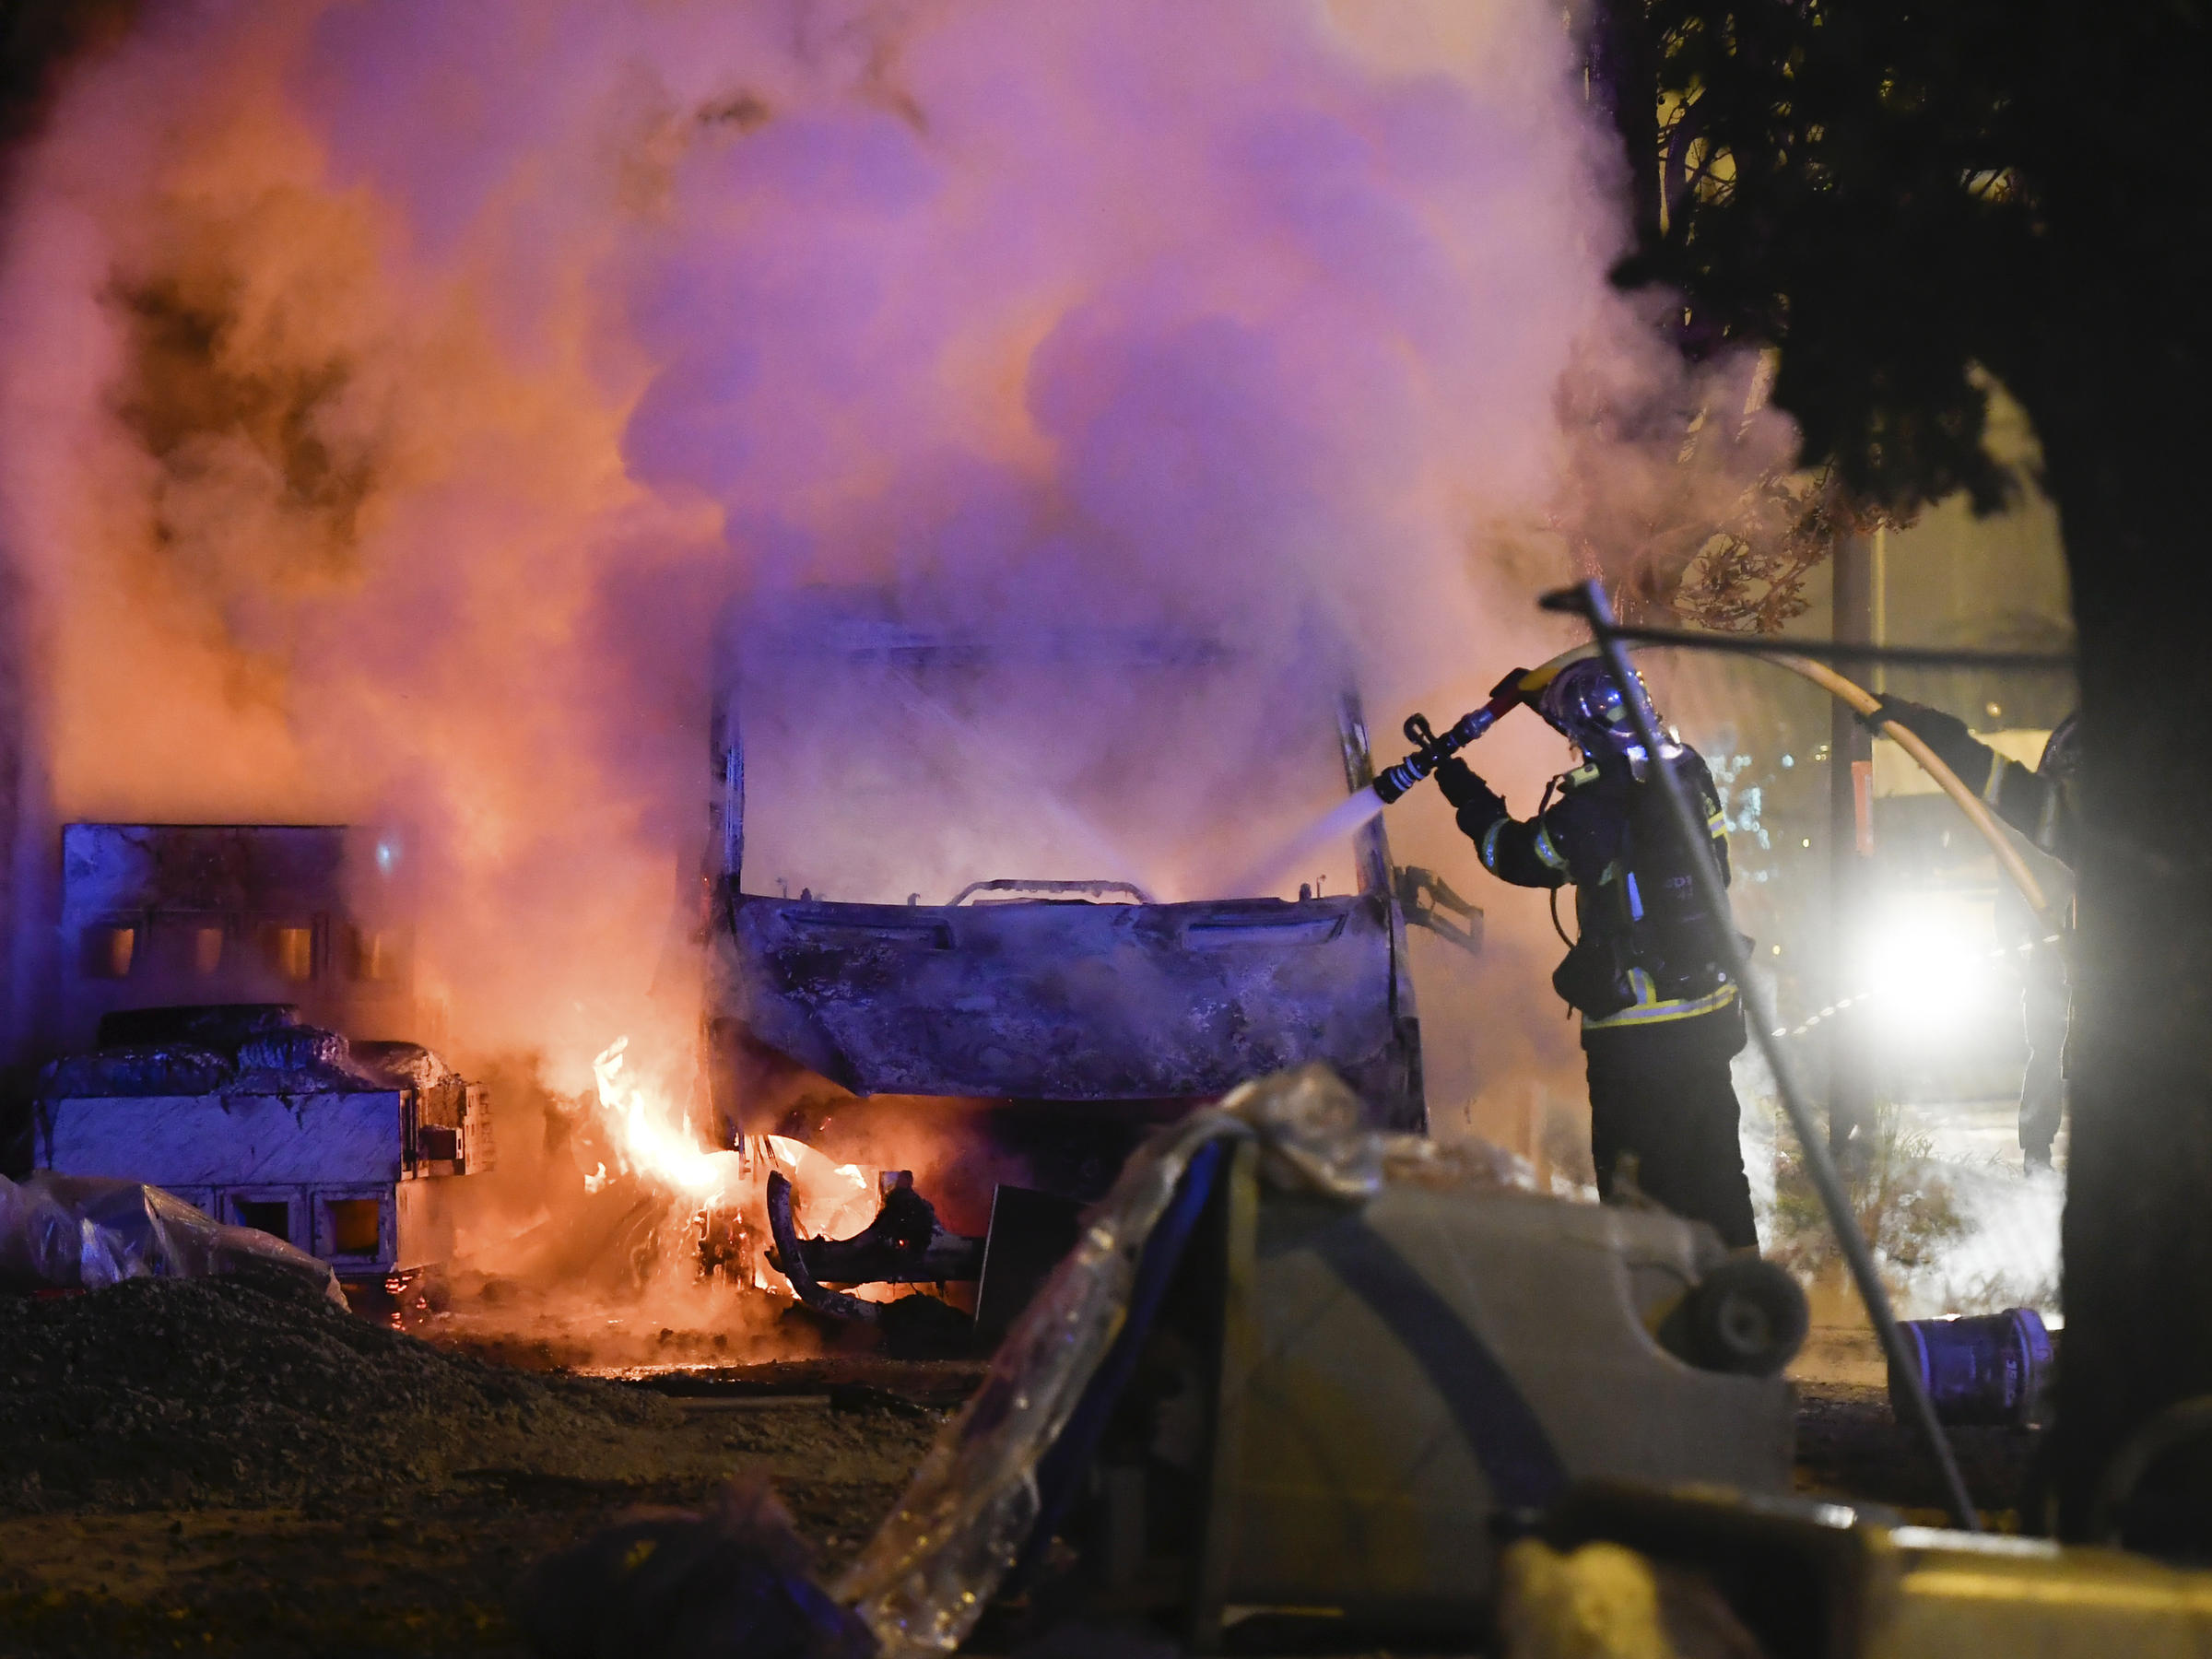 nights of unrest  torched cars  after fatal shooting by police in nantes  france